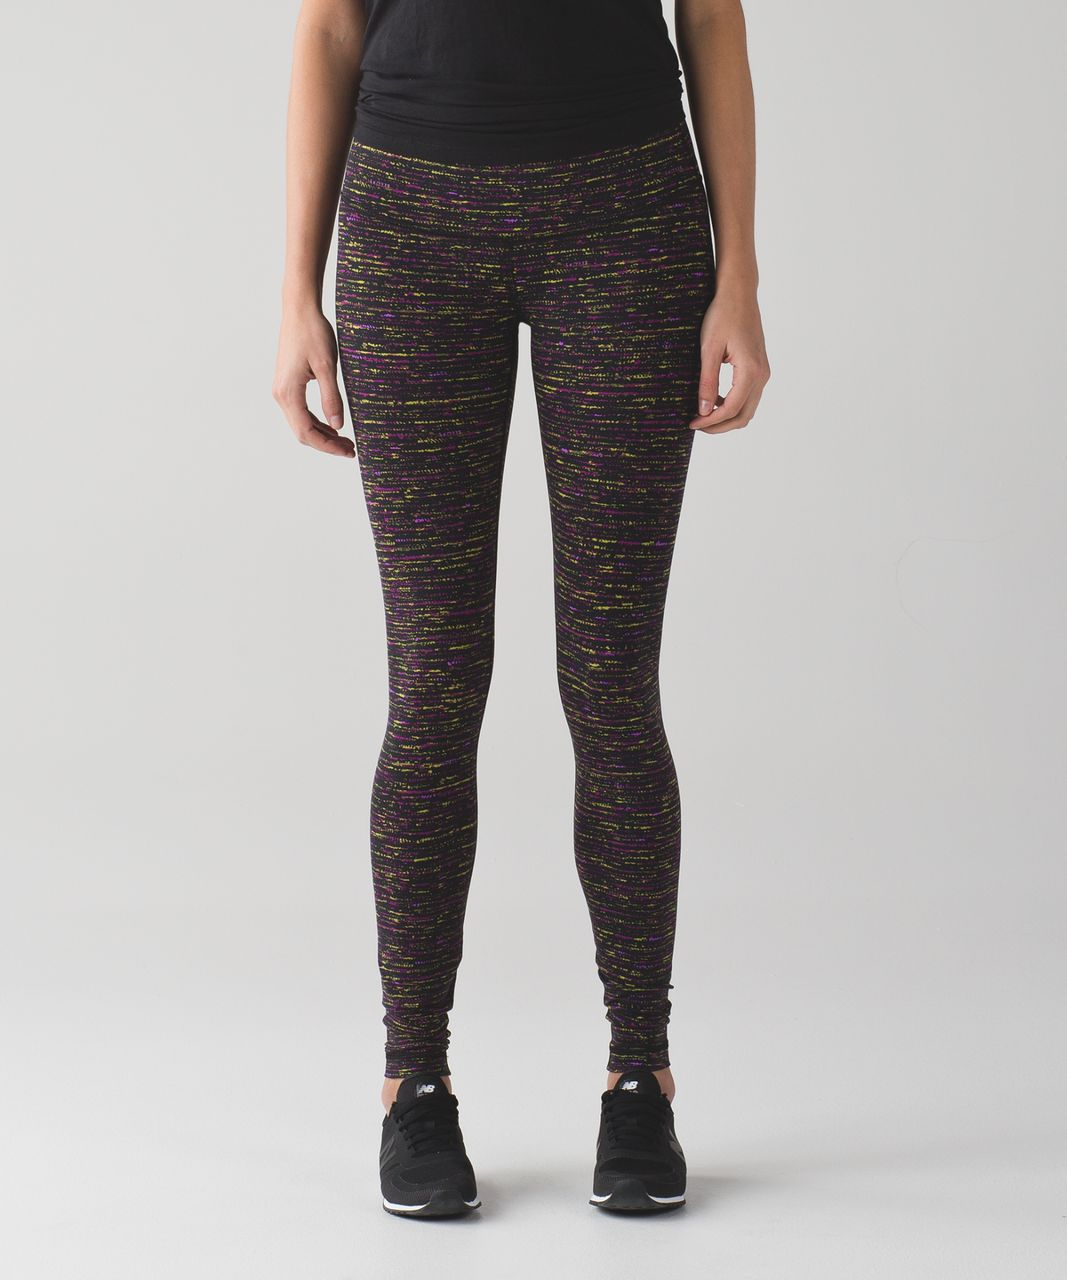 Lululemon Wunder Under Pant III - Tweed Runner Aurora